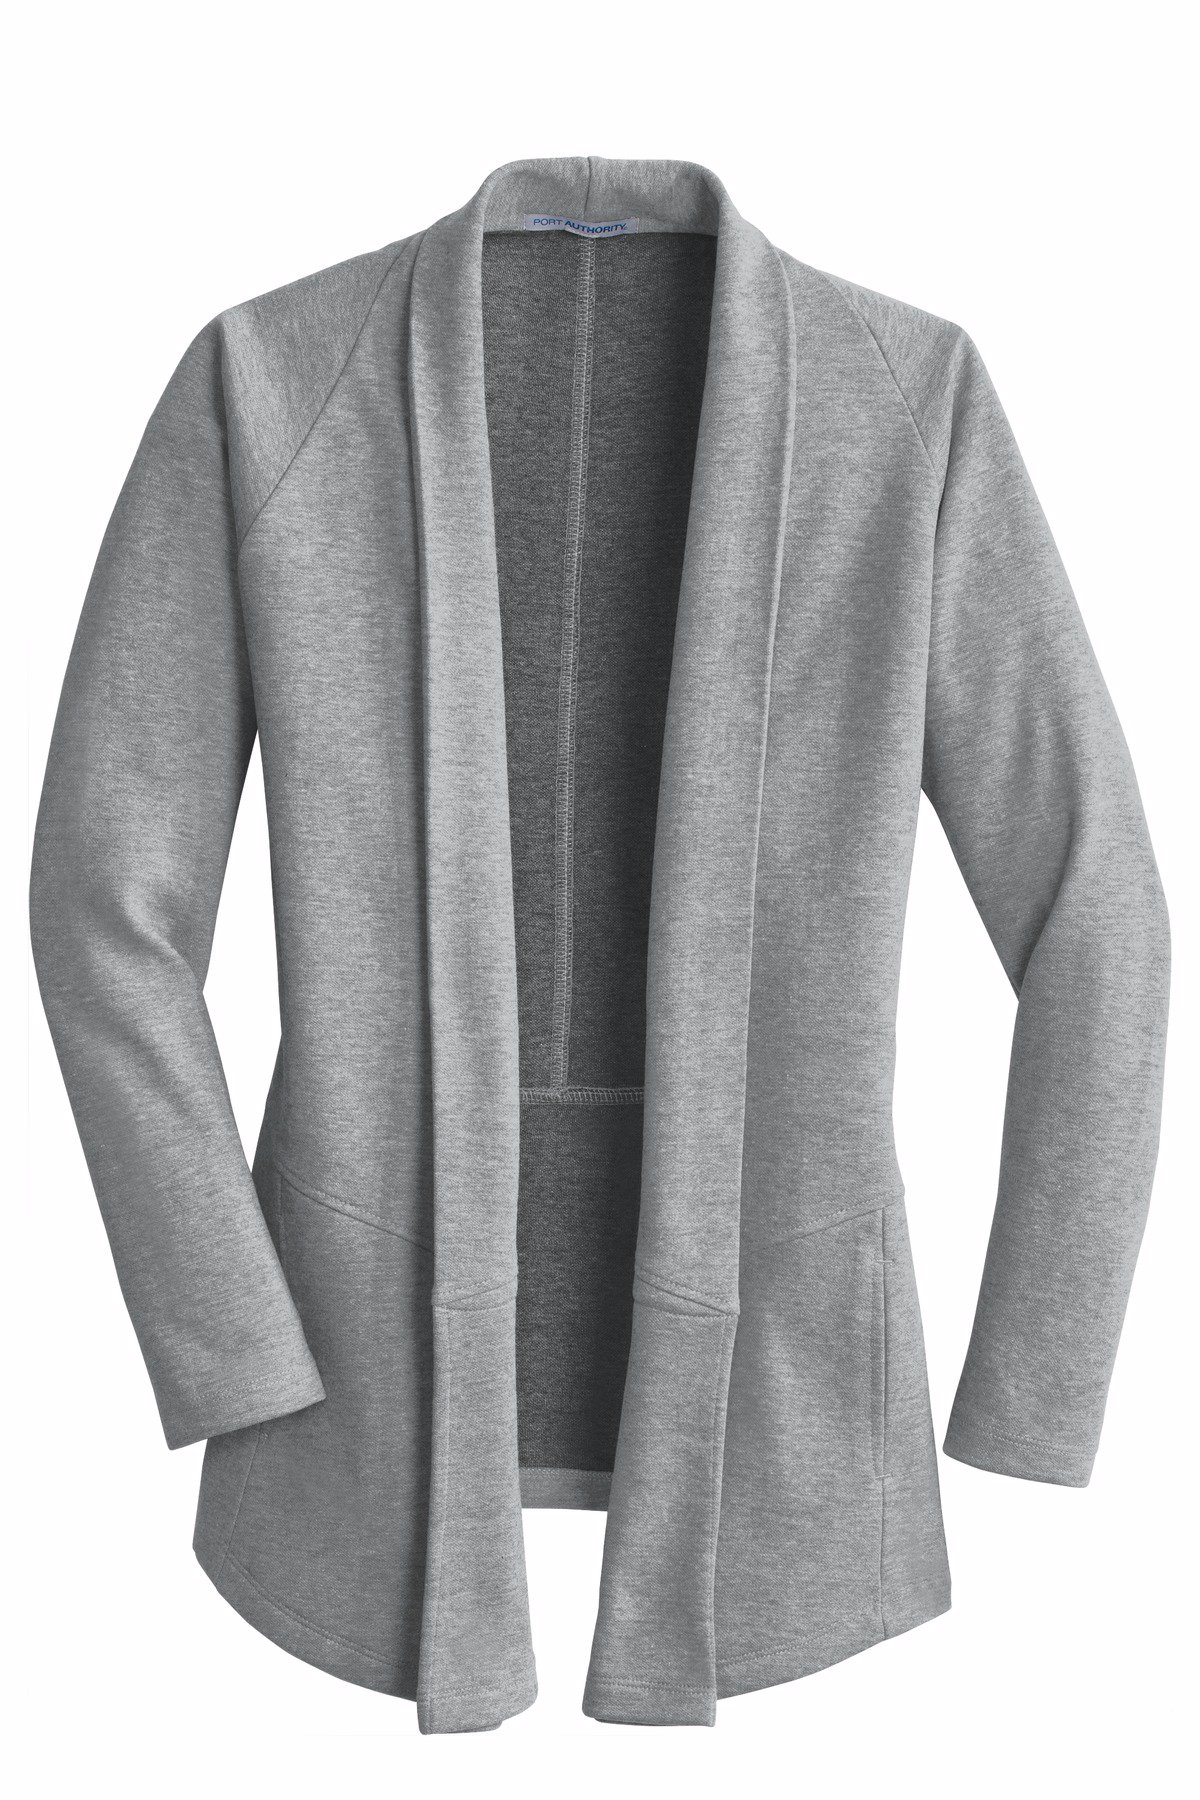 Medium Heather Grey/ Charcoal Heather